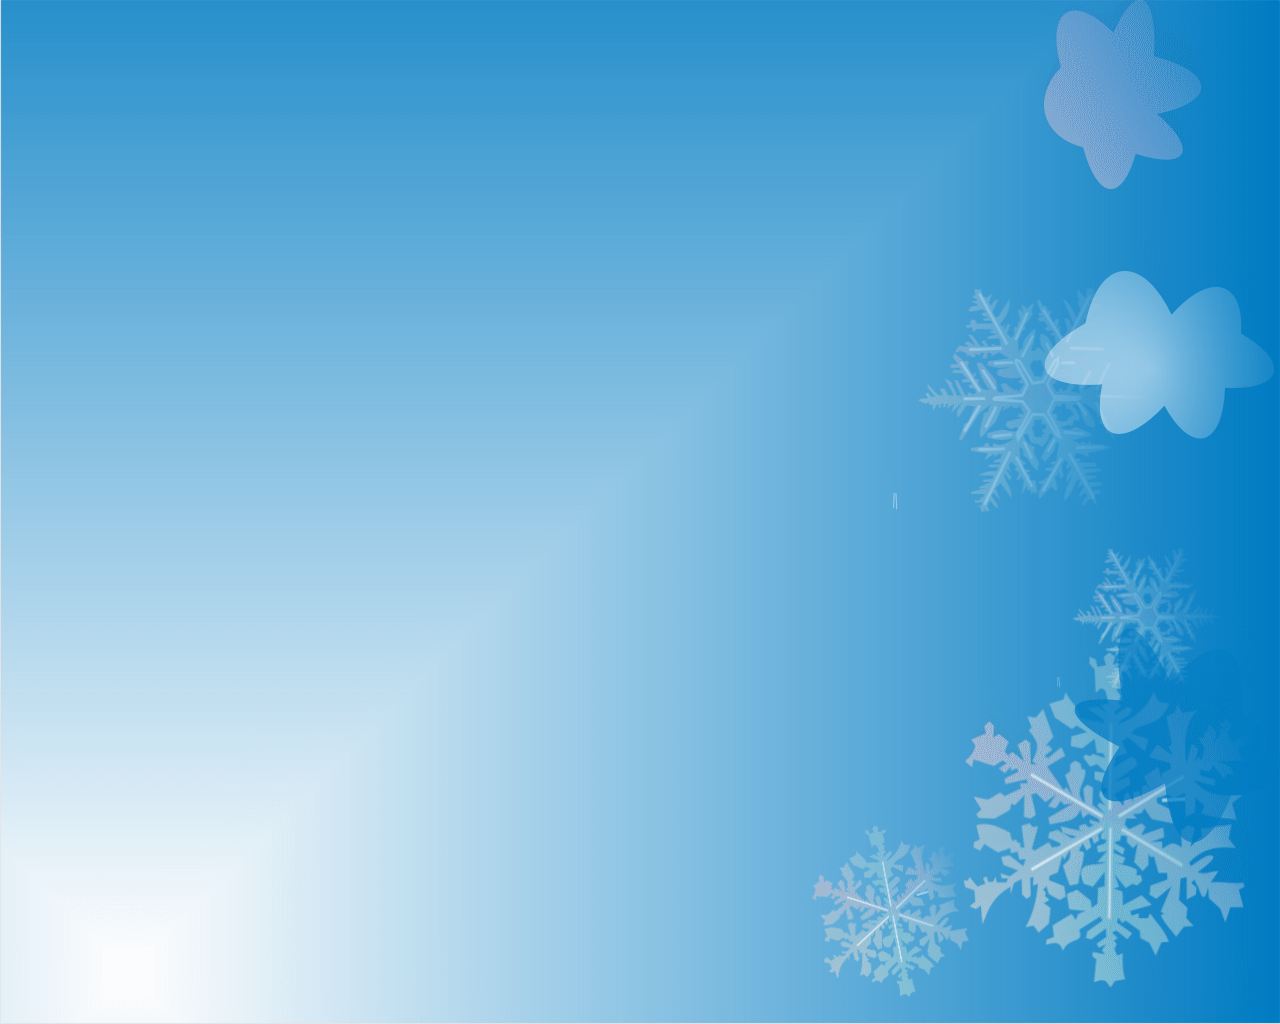 Snow powerpoint leoncapers snow powerpoint toneelgroepblik Choice Image